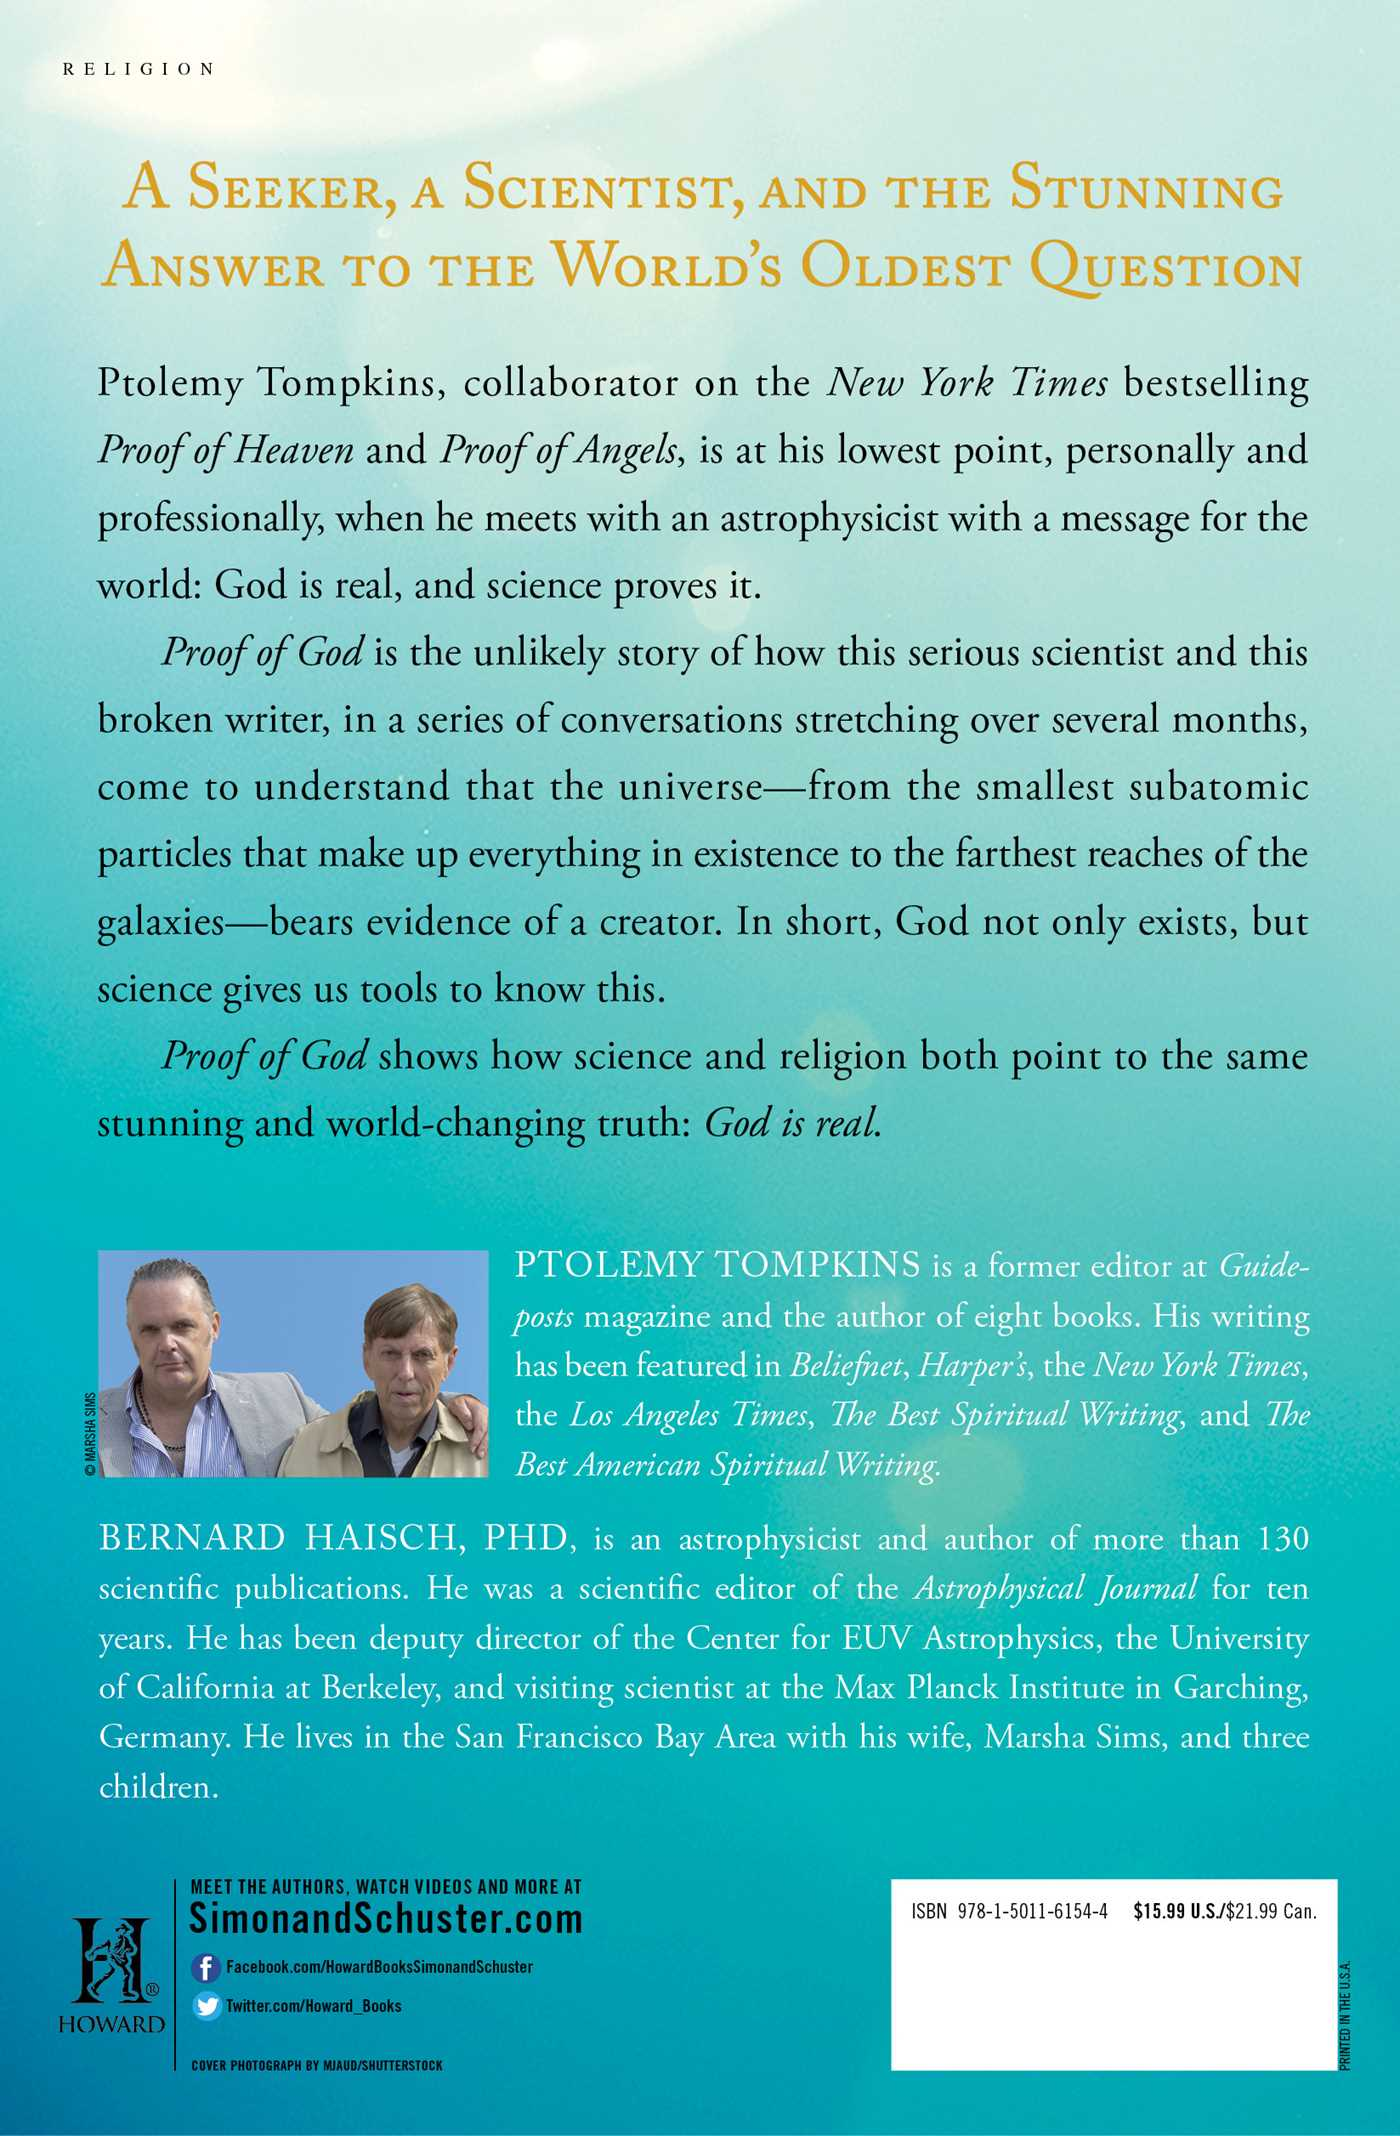 The answer proof of god in heaven array proof of god book by ptolemy tompkins bernard haisch official rh simonandschuster com fandeluxe Choice Image